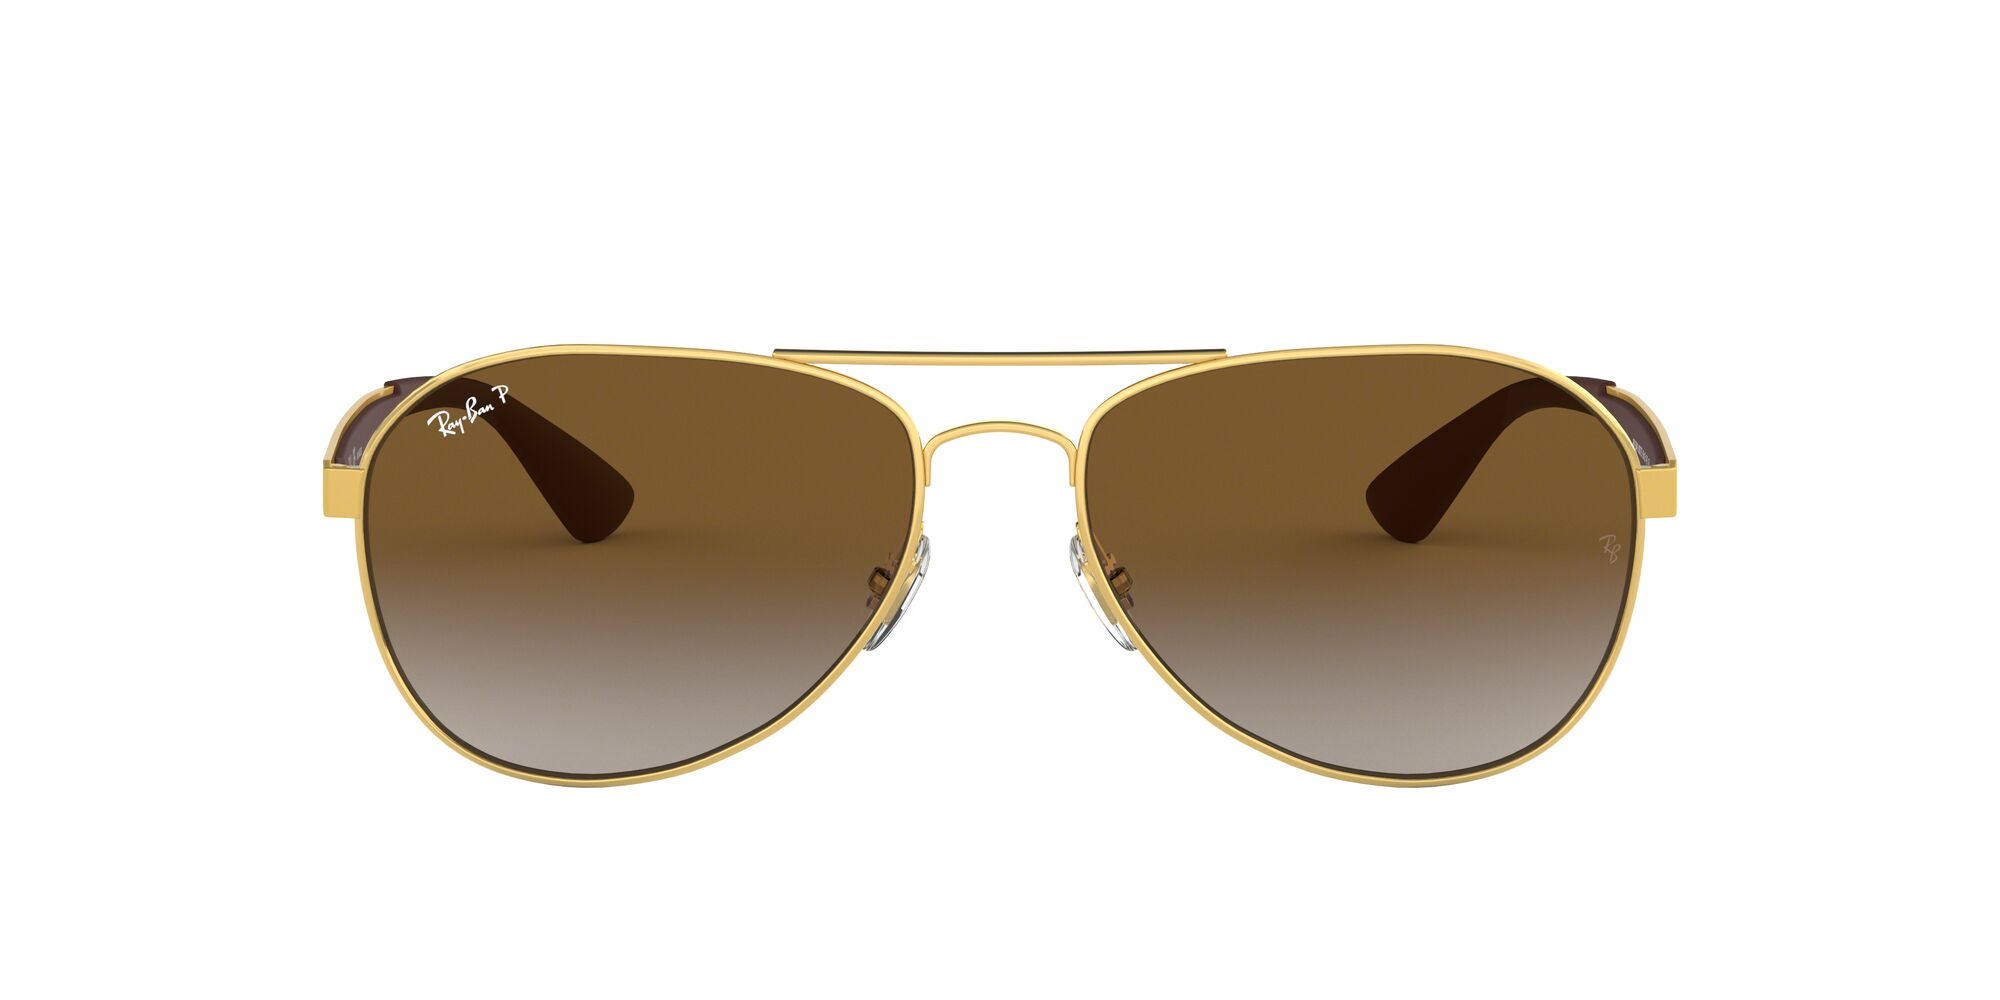 Front Ray-Ban Ray-Ban 0RB3549 001/T5 58/16 Goud/Groen